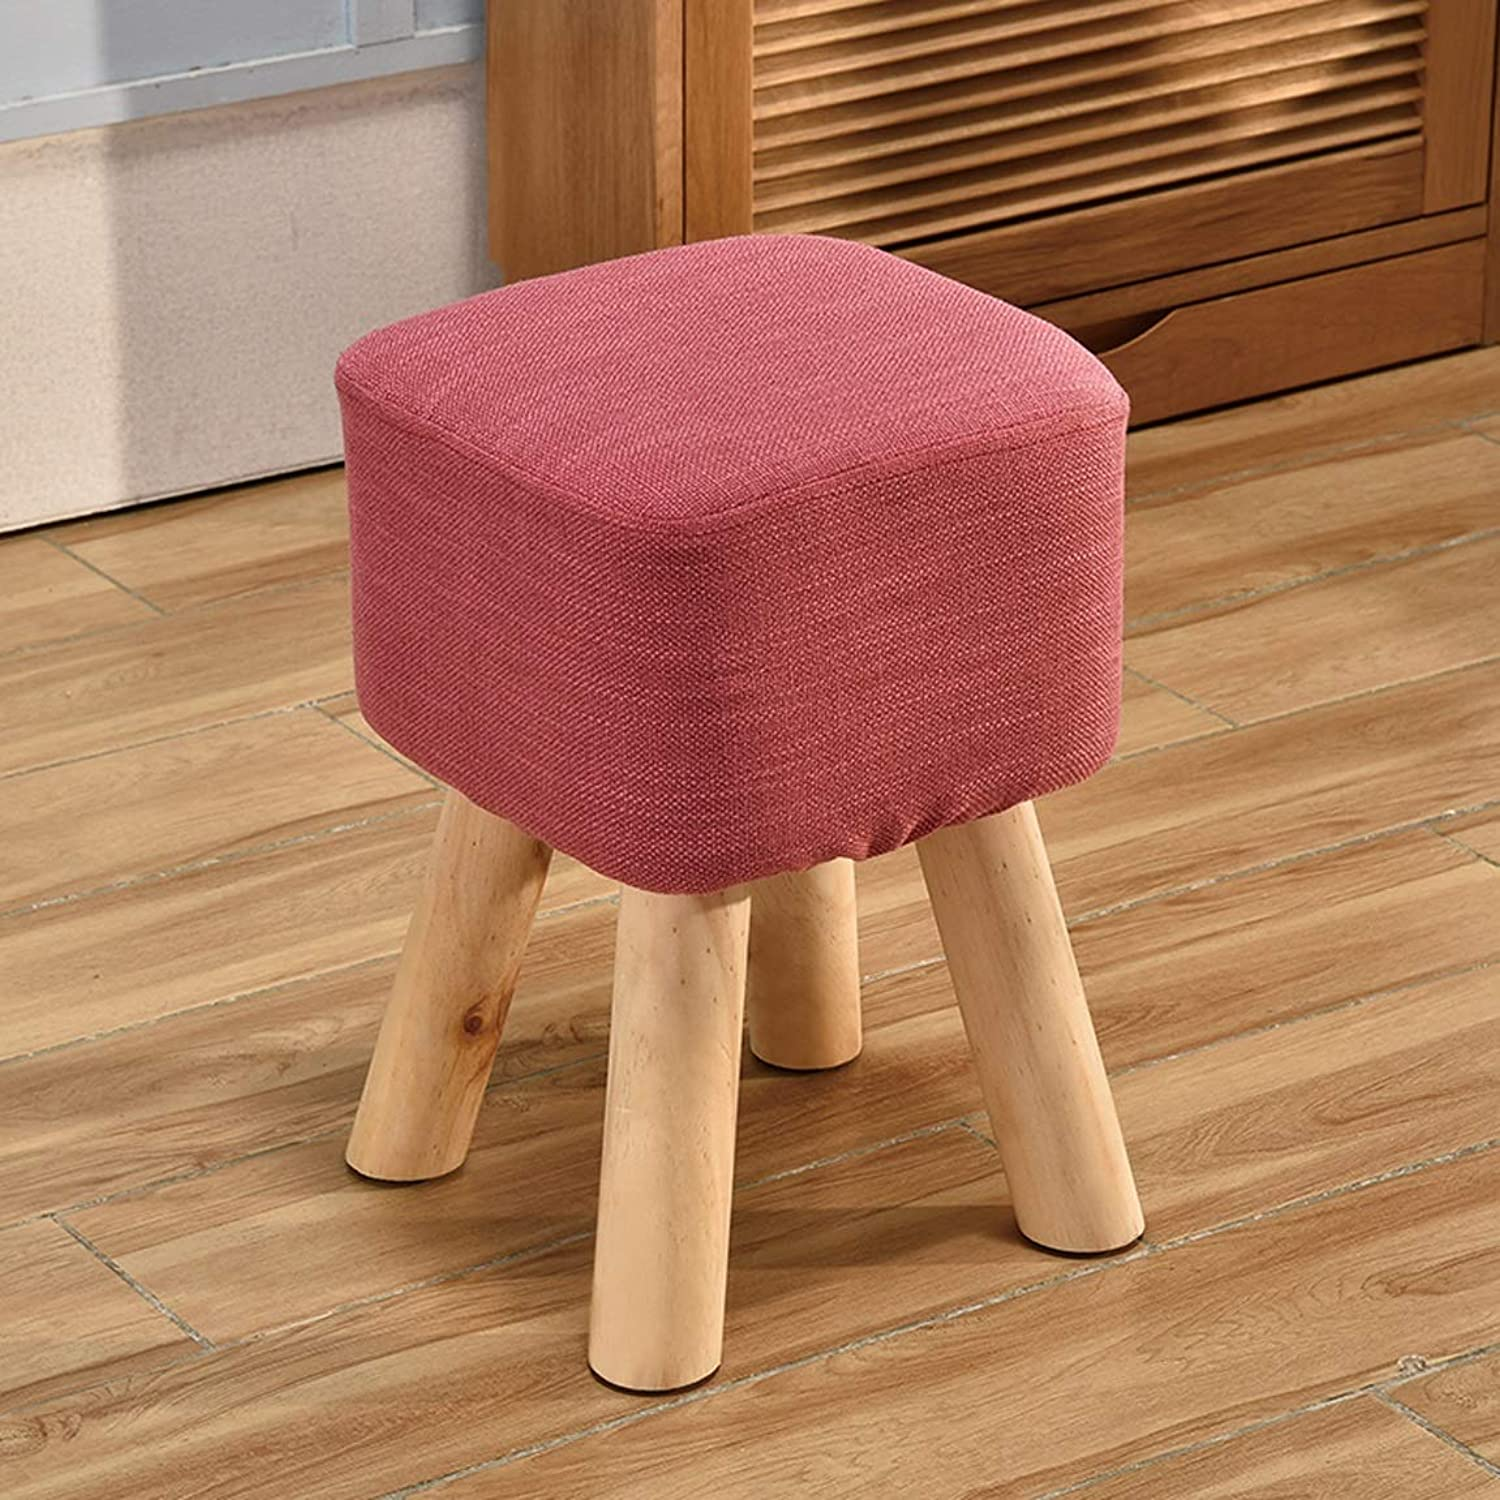 HZB Household Small Stool Living Room for shoes Stool Fashion Adult Square Stool Sofa Sofa Stool Bench (color   pink red)